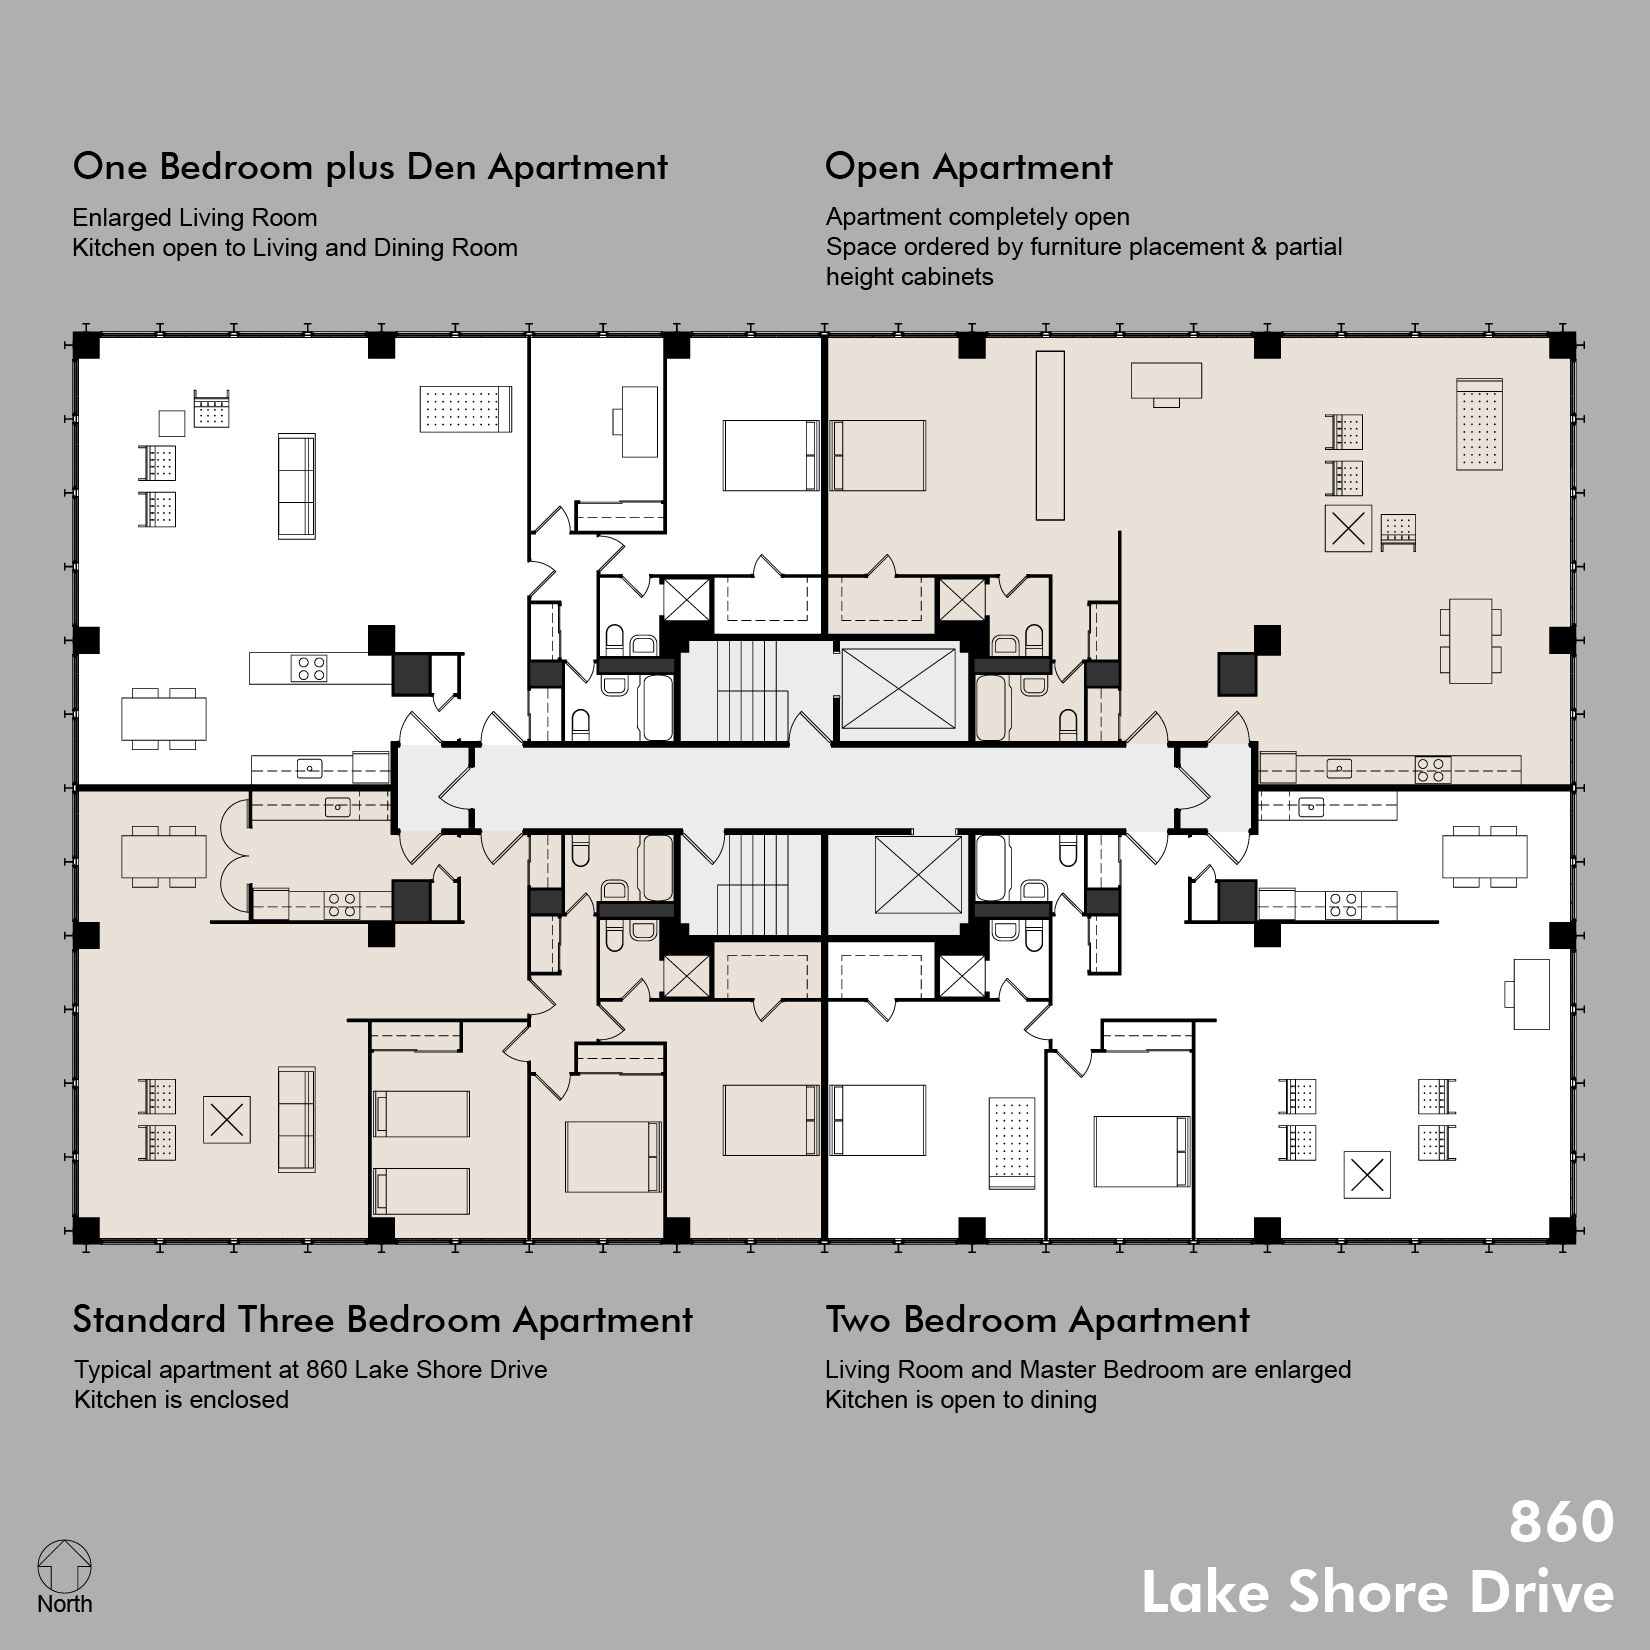 860 floor plans including standard apt Apartment design floor plan